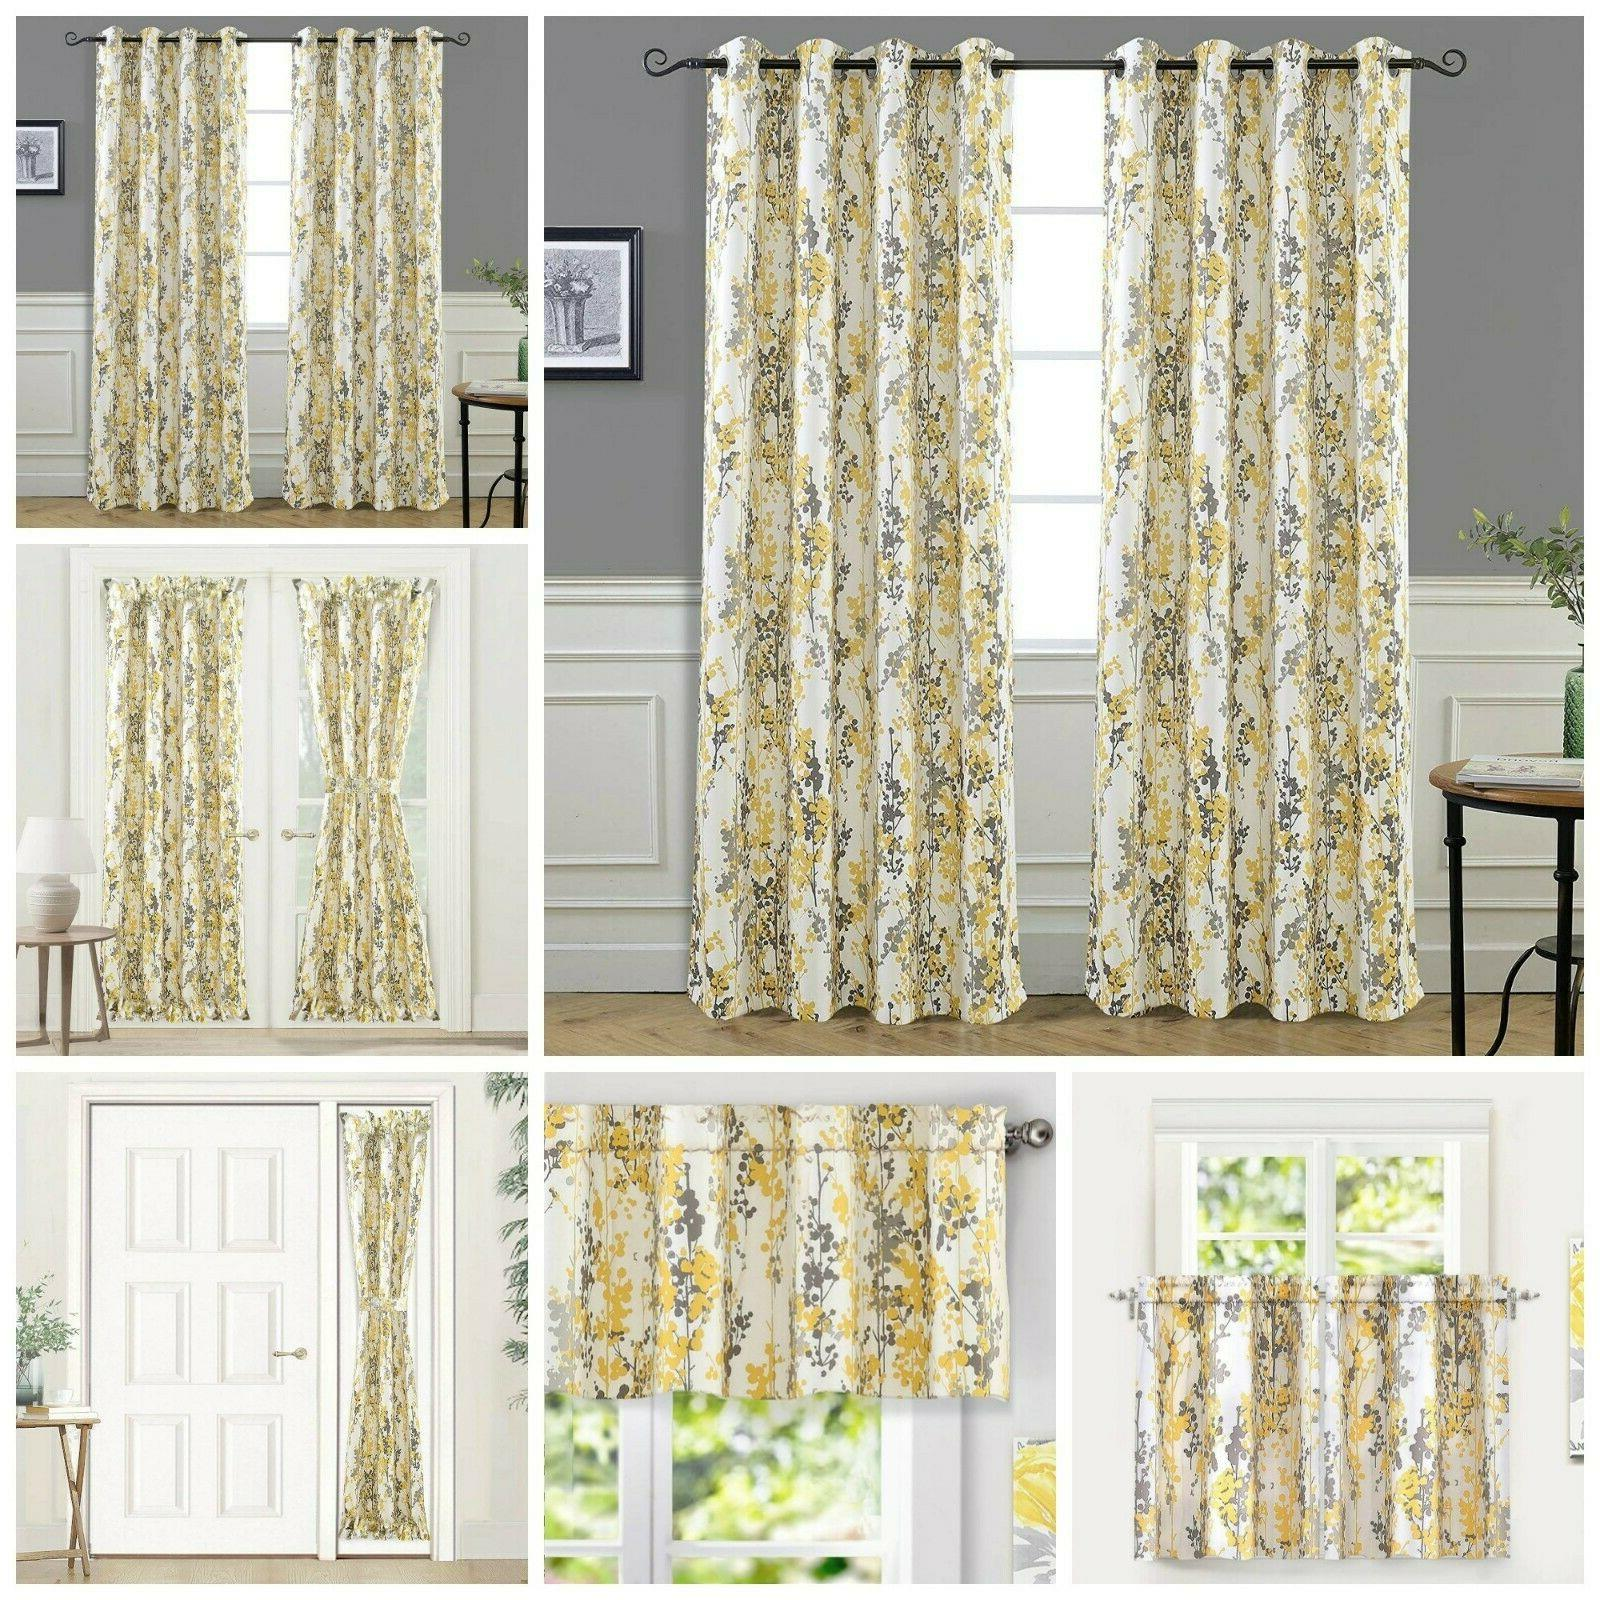 Window Curtain Floral Blossom Kitchen Living Room Bedroom Cu